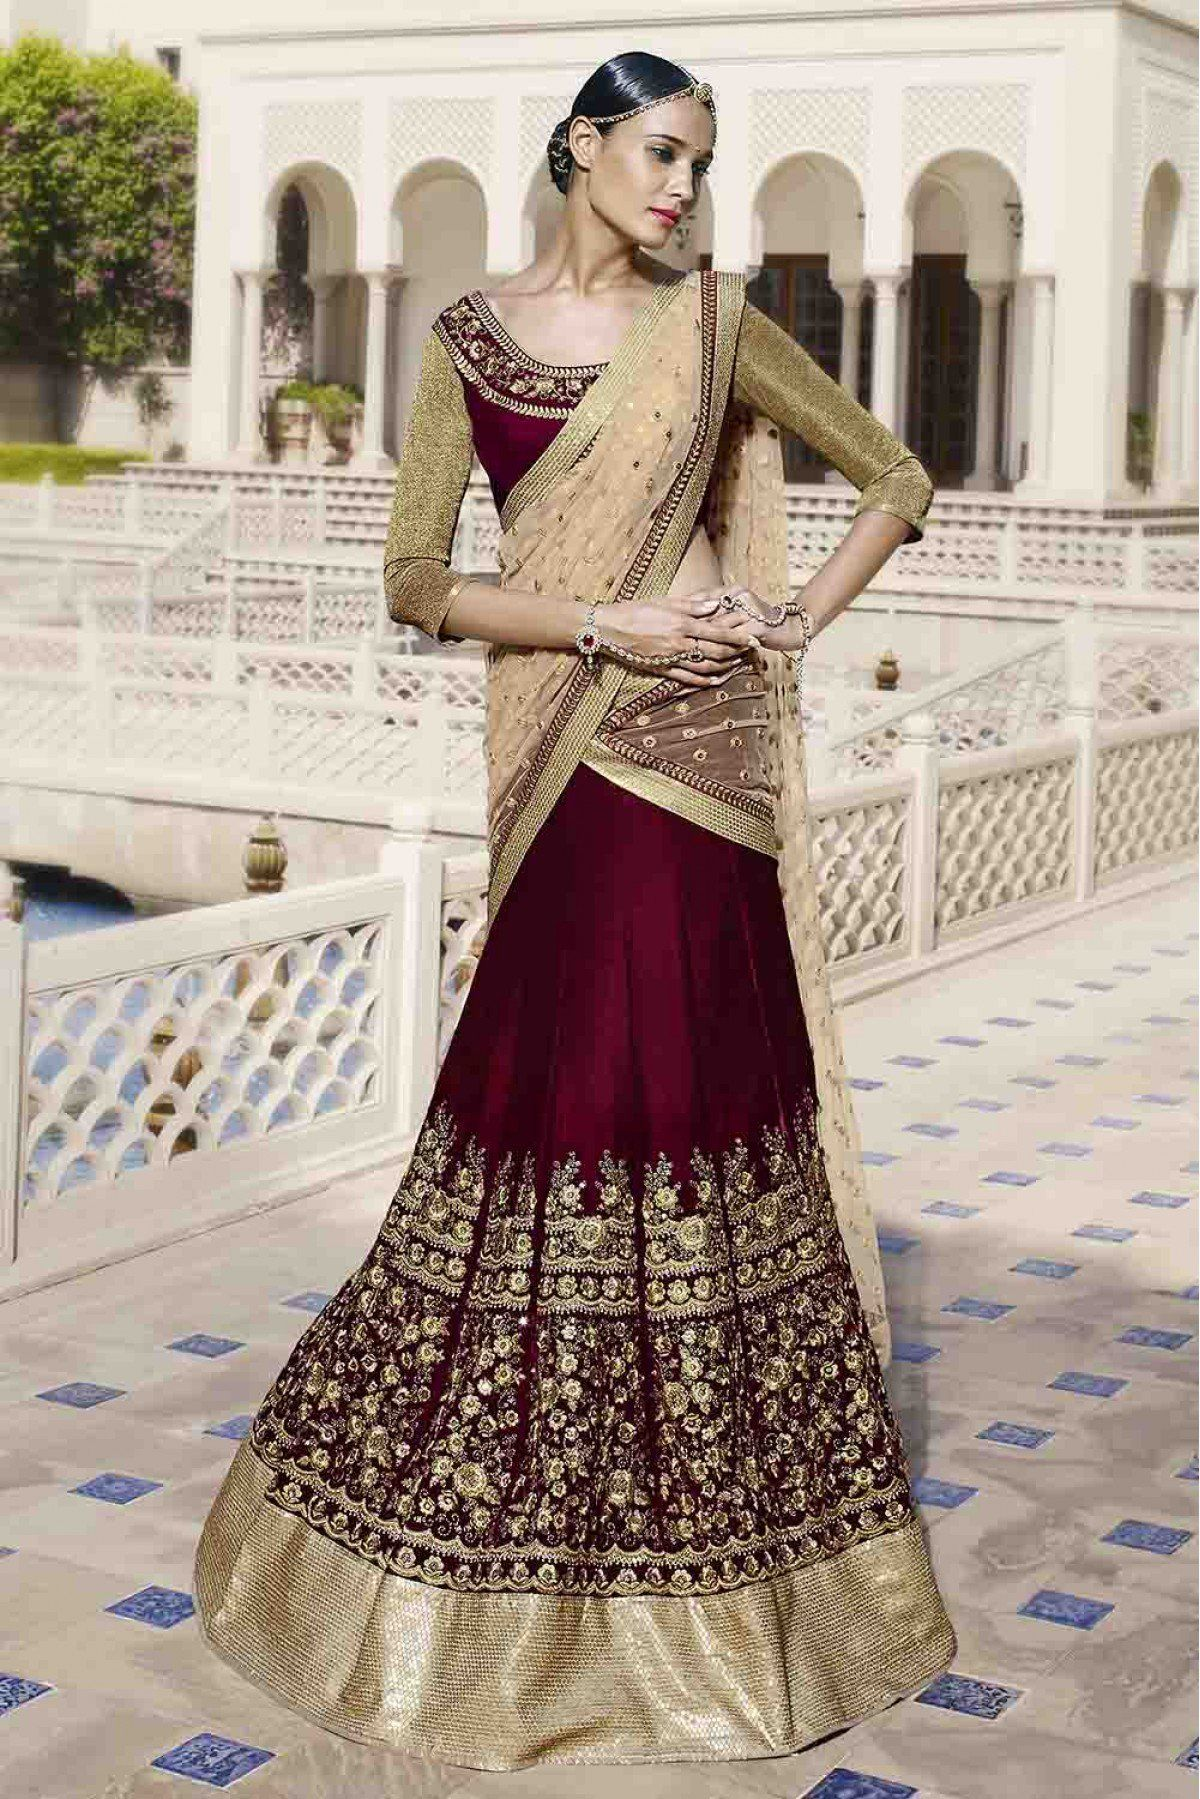 faa1f903b7 Nakkashi Velvet Party Wear Lehenga Choli in Maroon Colour.It comes with  matching Dupatta and Blouse.It is crafted with Embroidery.